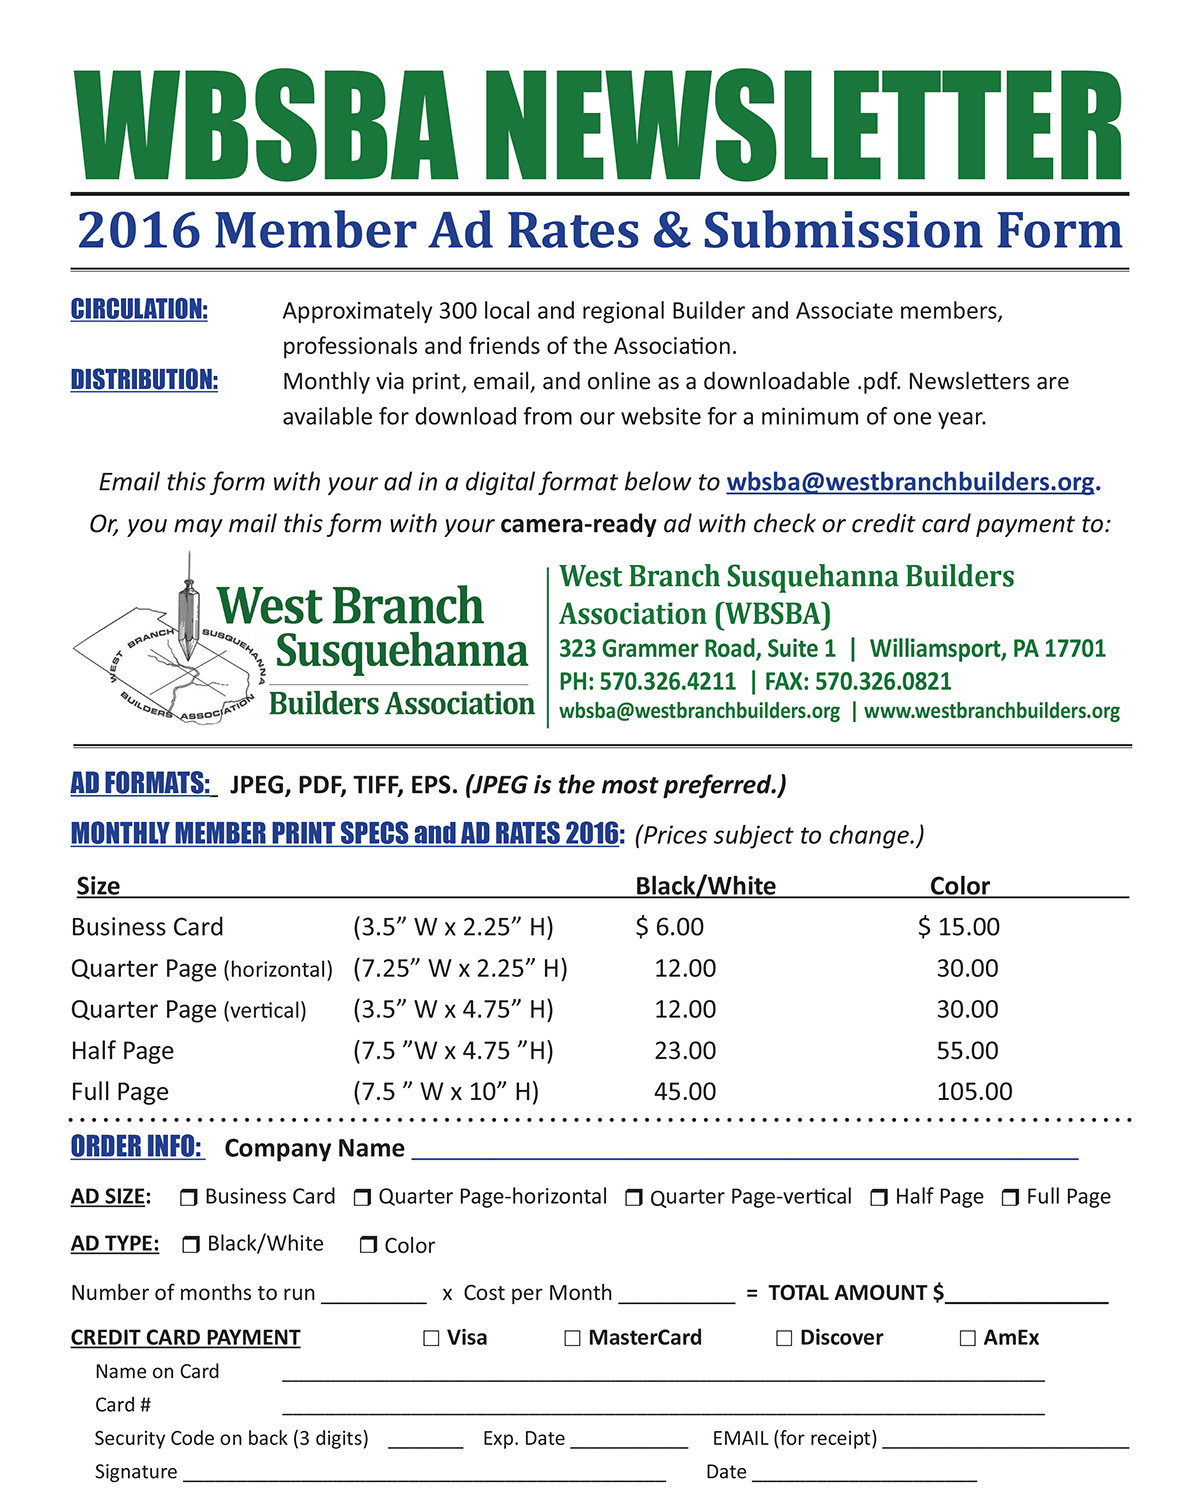 WBSBA Newsletter Advertising Rates 2016